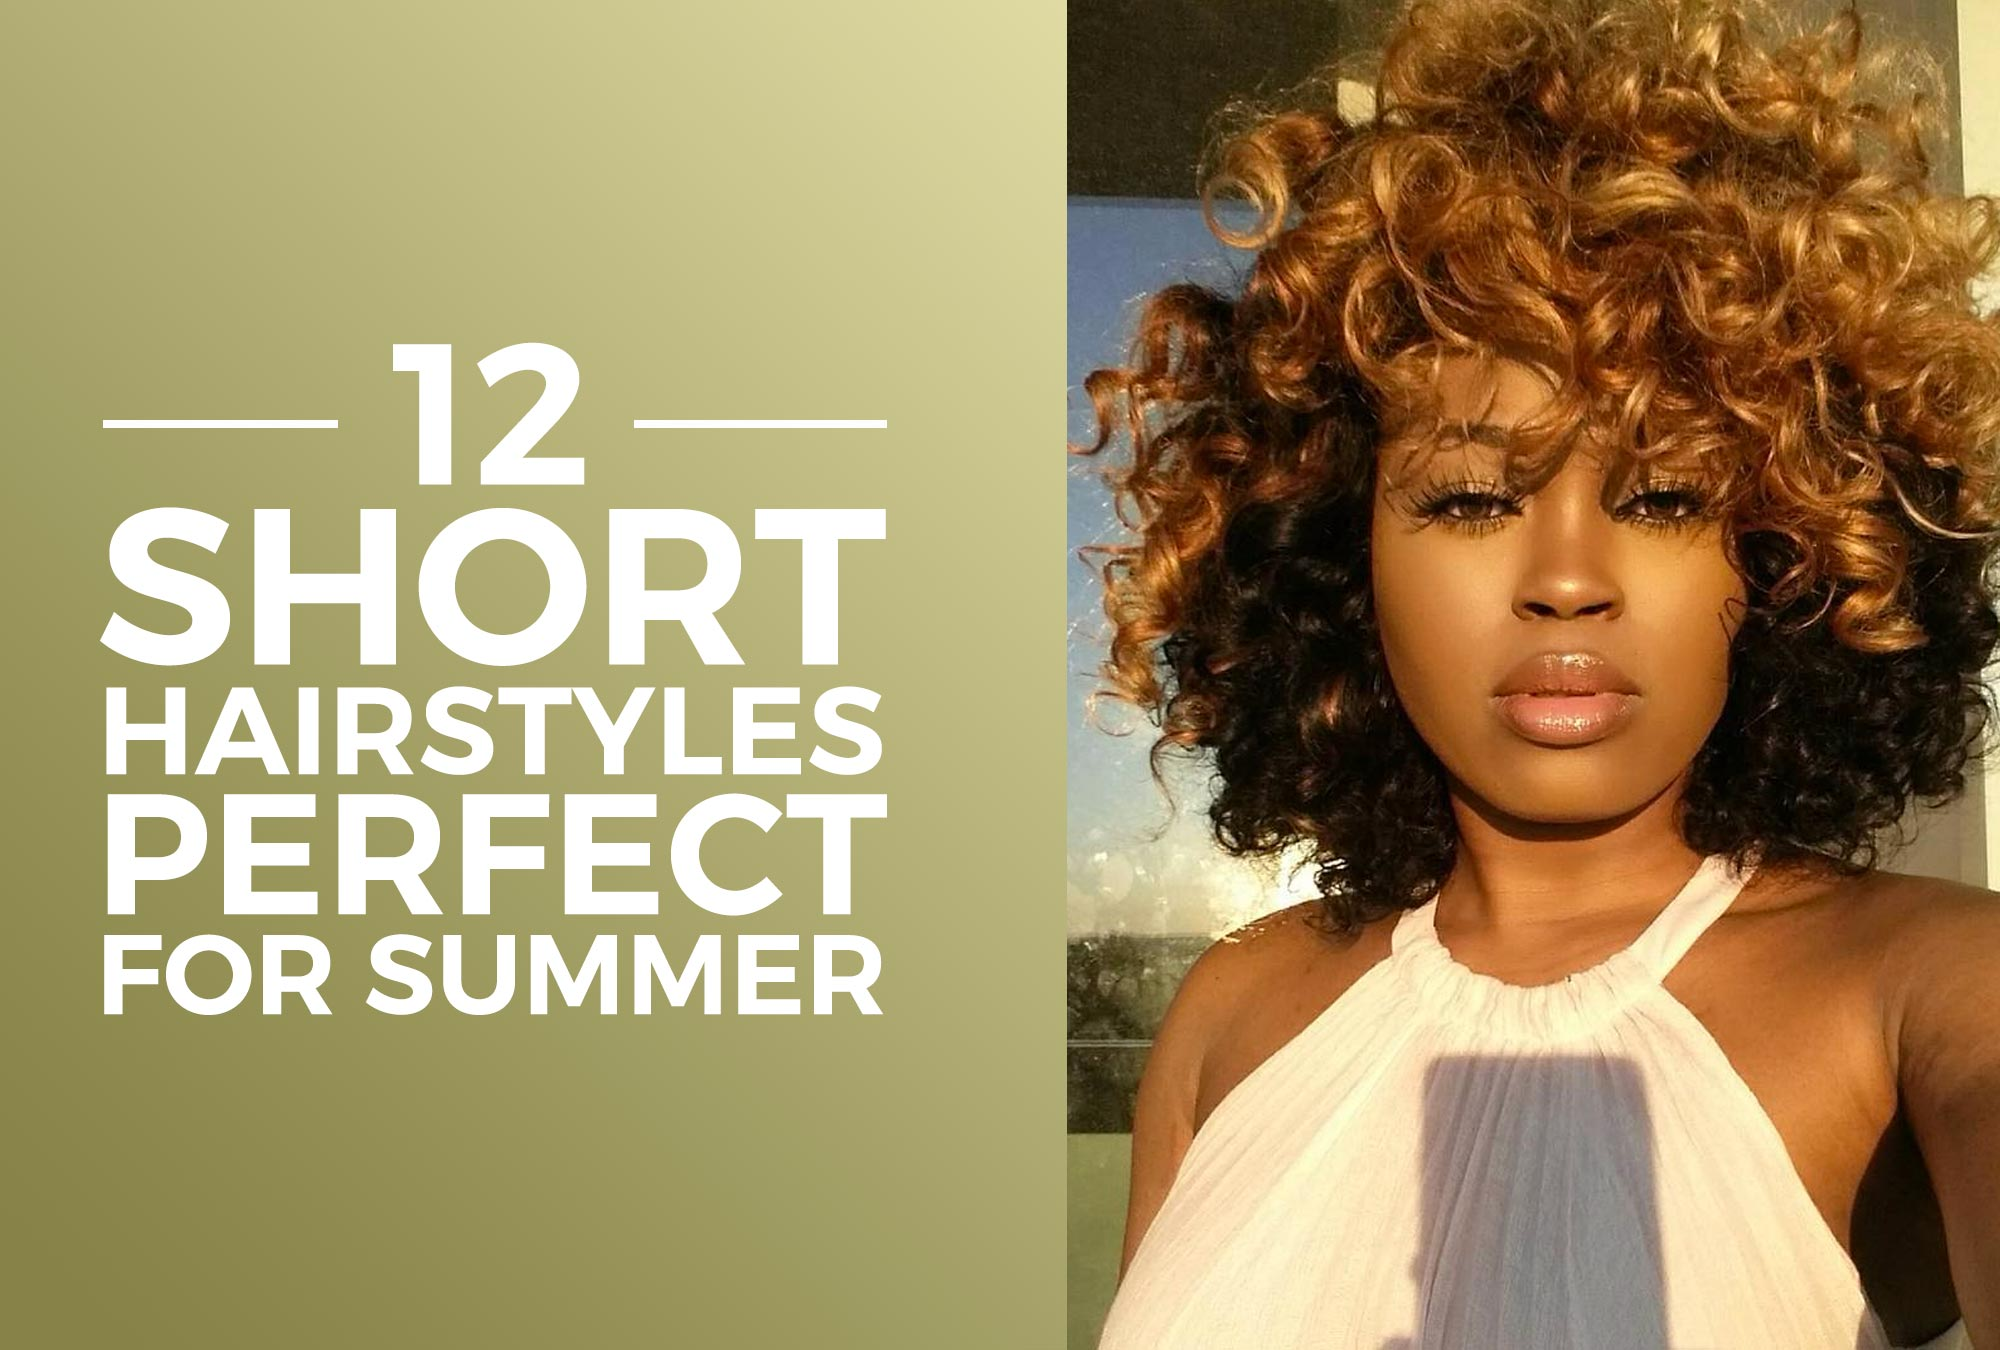 12 Short Hairstyles Perfect For Summer